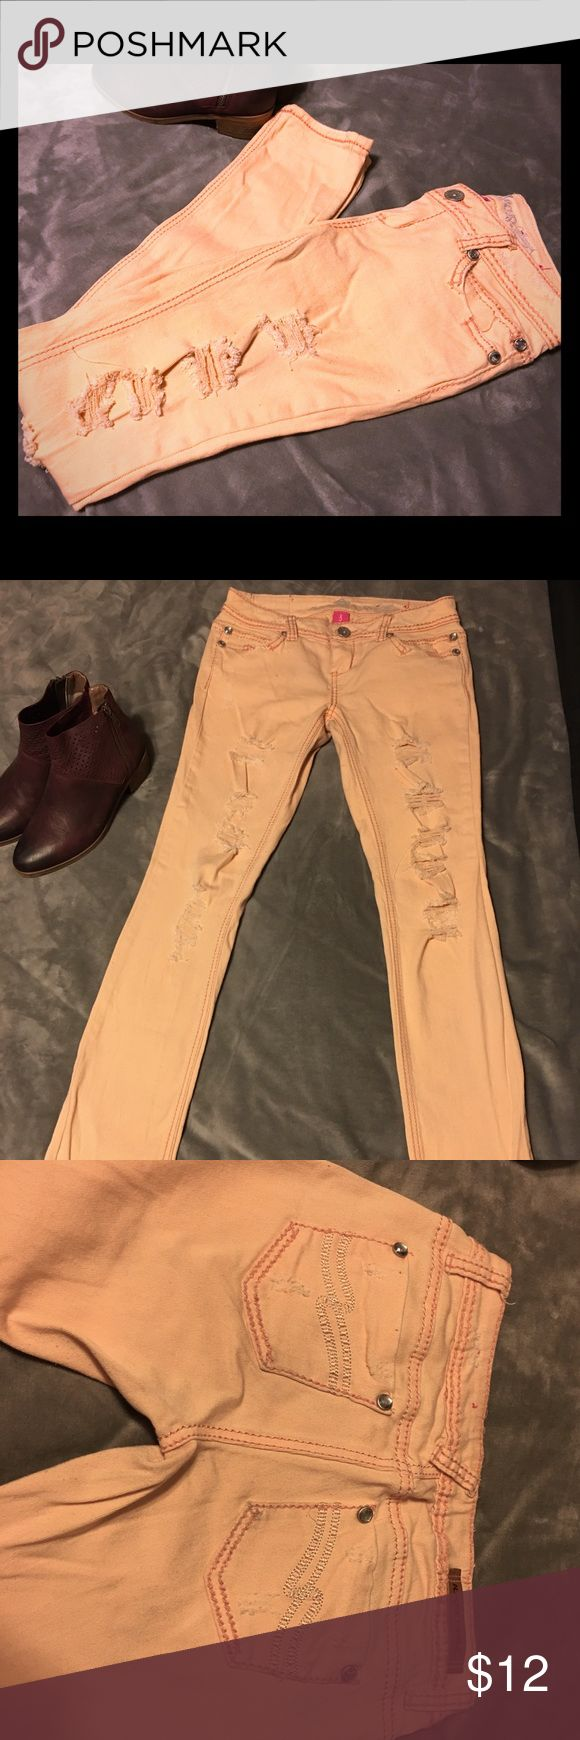 Distressed coral boot cut jeans Pre loved. No stains or tears. These jeans stretch and are very comfortable. They are more like a low rise. Comes from smoke free, pet free home. Shipping dates are Tuesday through Friday Almost Famous Jeans Boot Cut